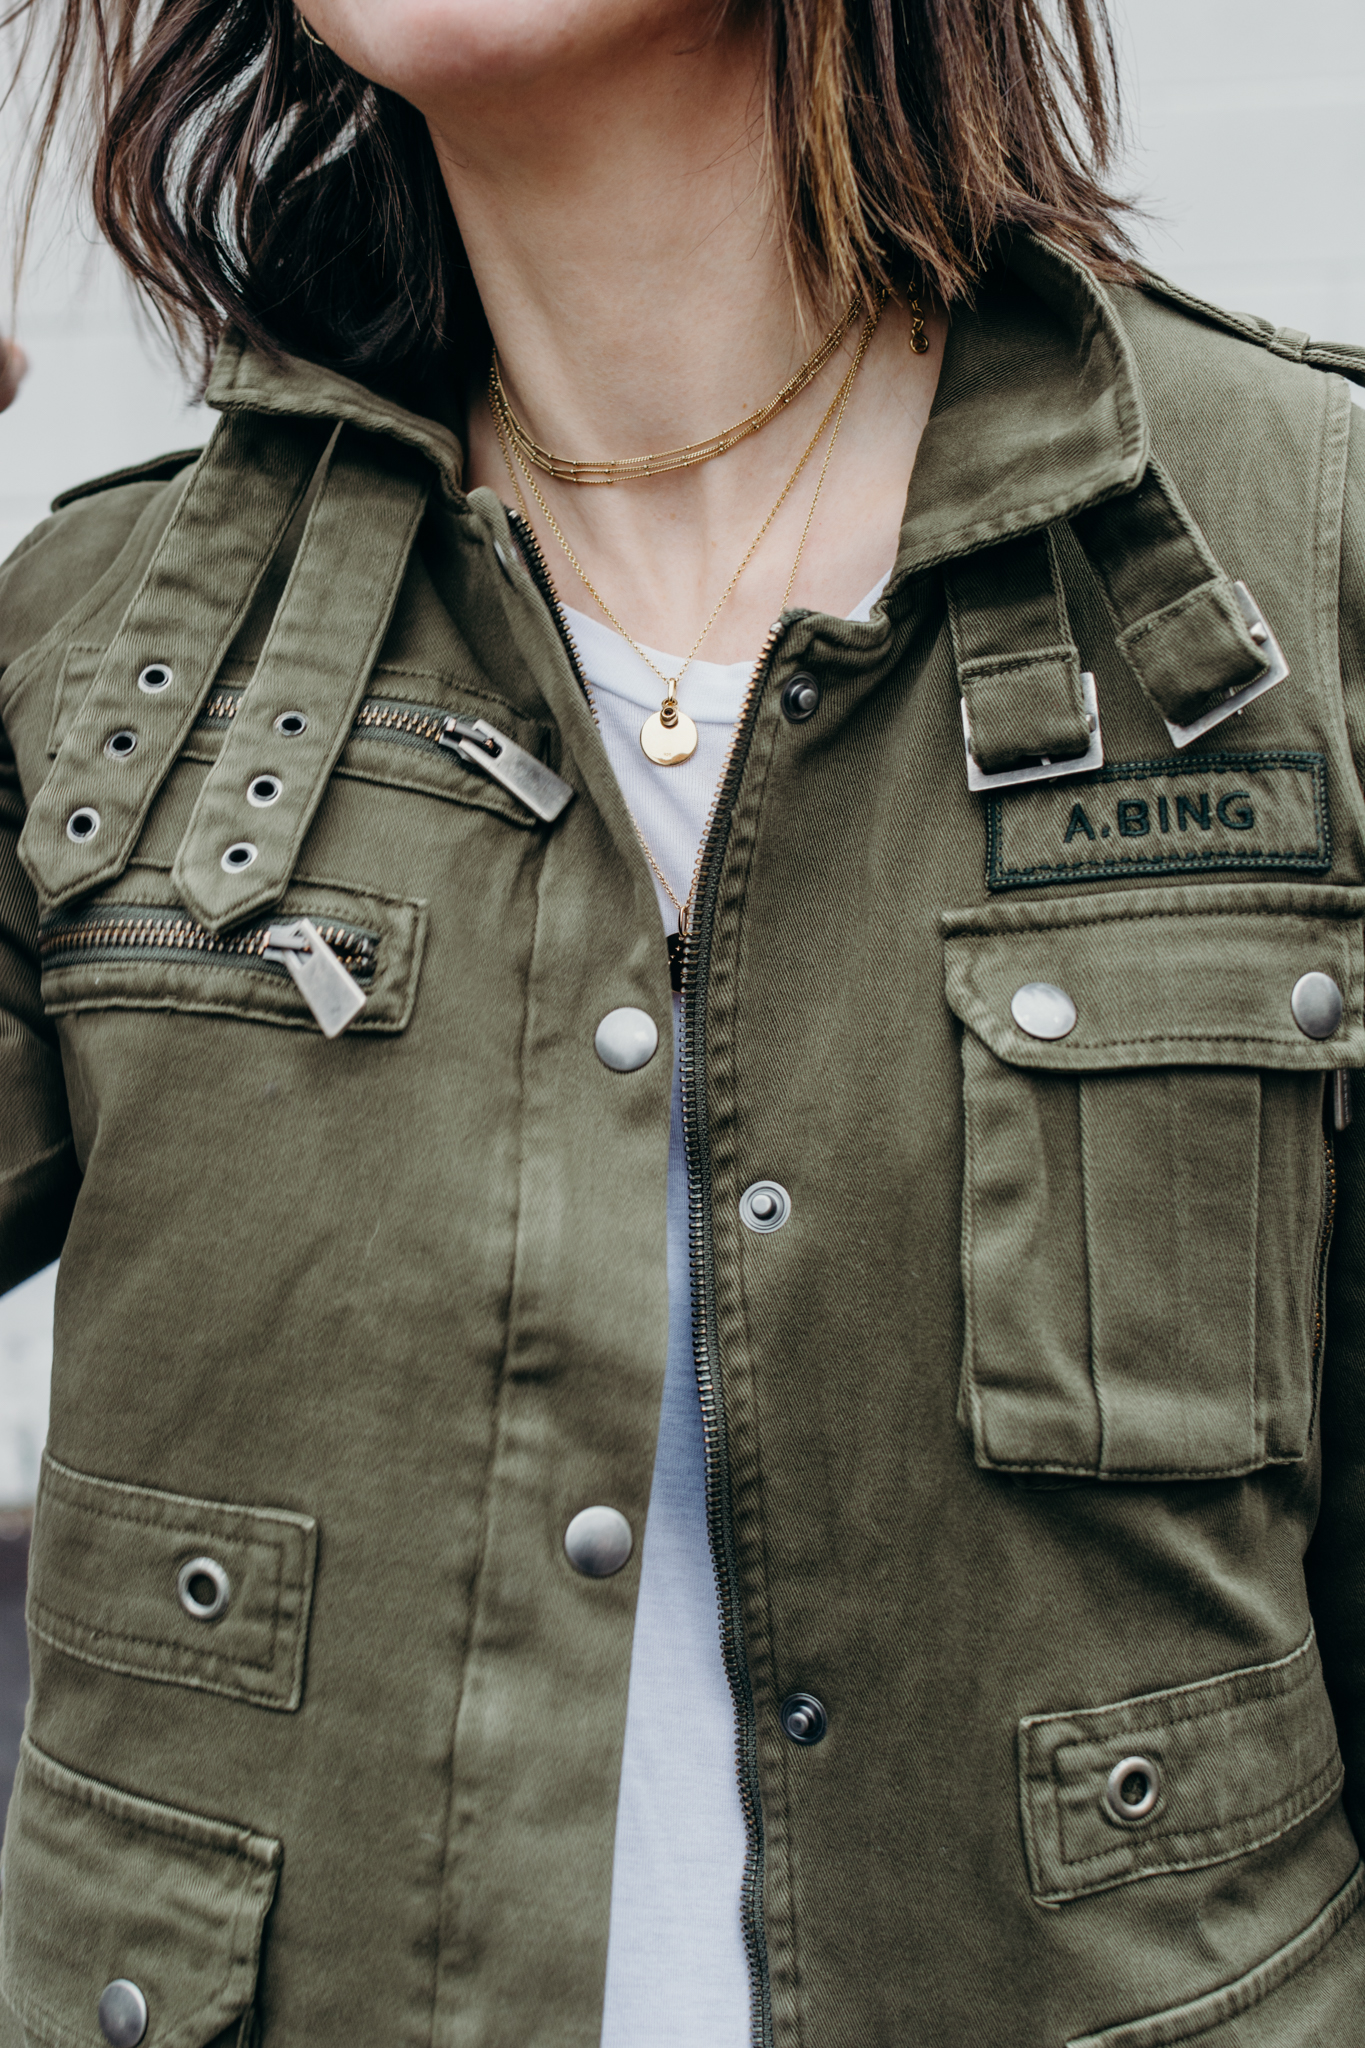 anine bing military jacket anine bing low charlie boot zara leather pants style apotheca